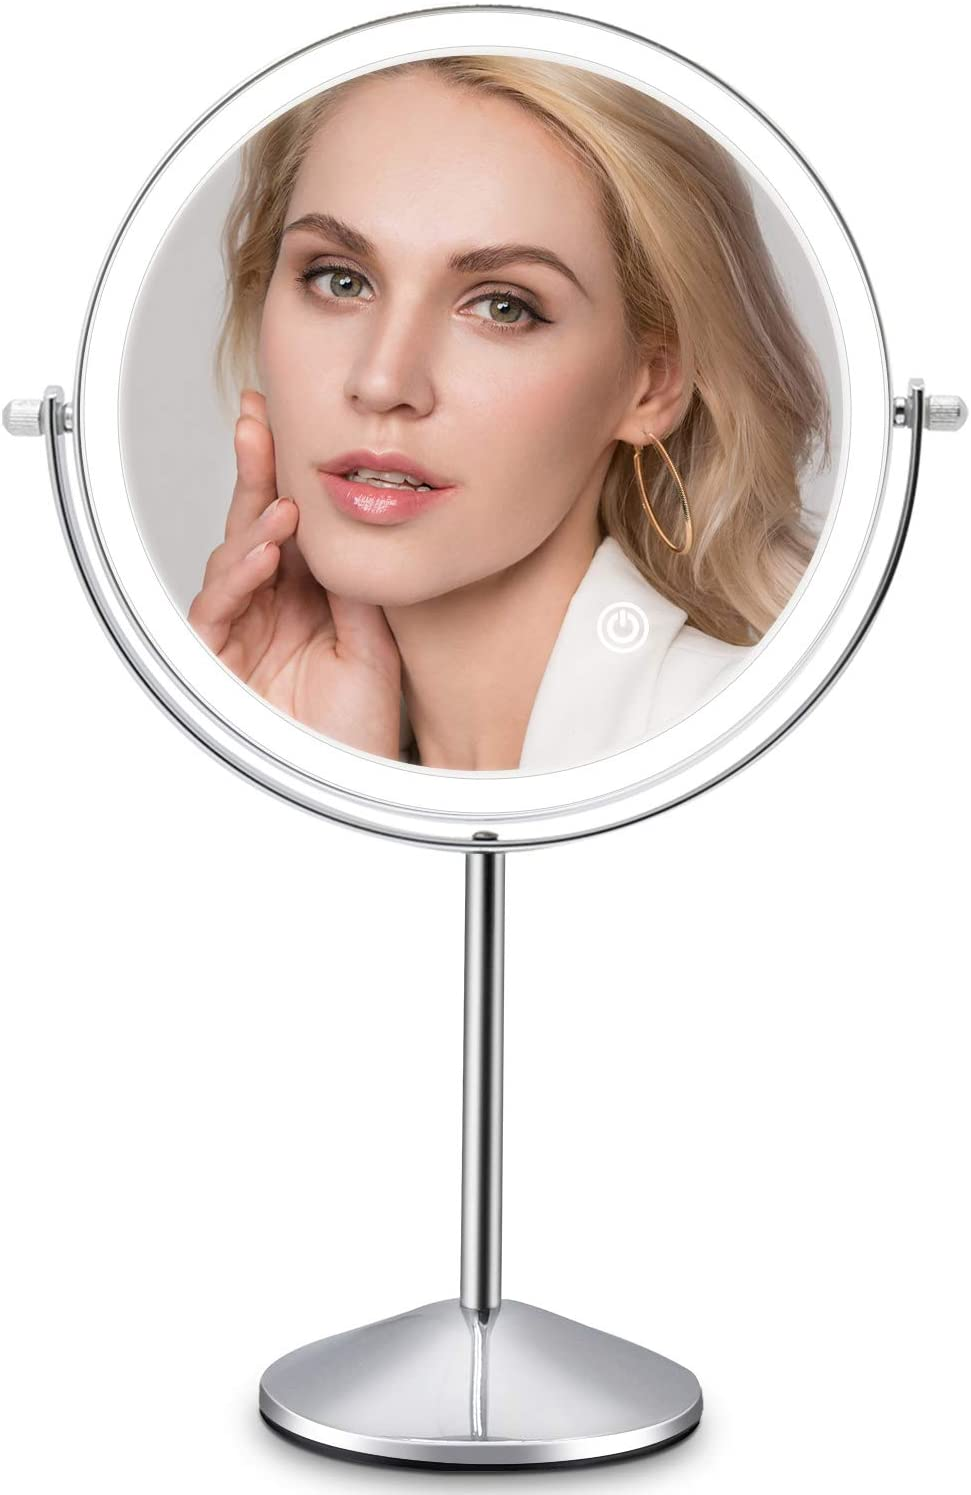 Rechargeable Lighted Makeup Vanity Mirror 8 Dedication Double Sided Inch L Excellent